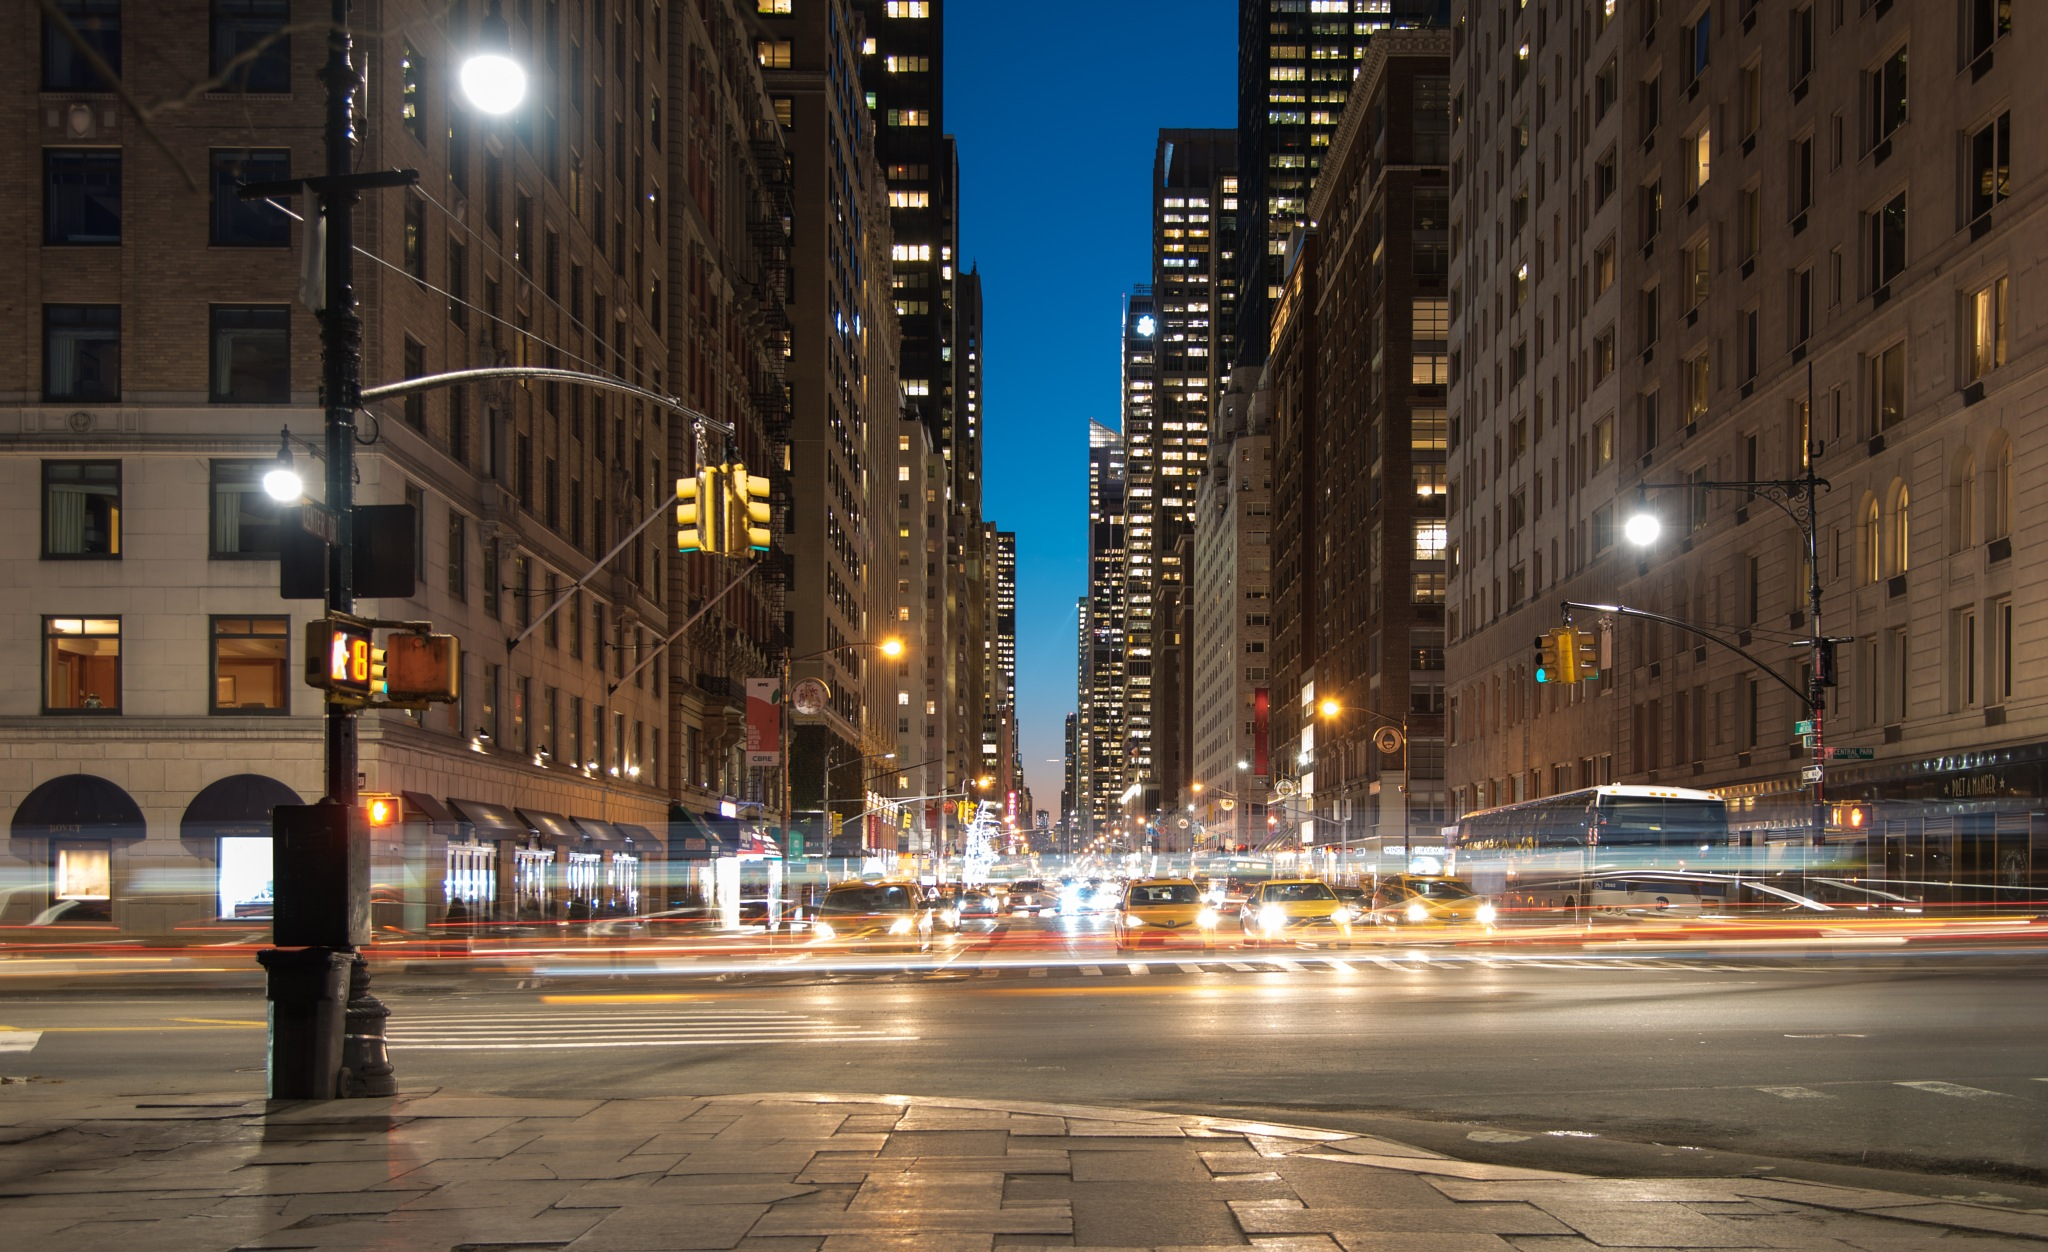 6th Avenue - New York by Oscar Vignone